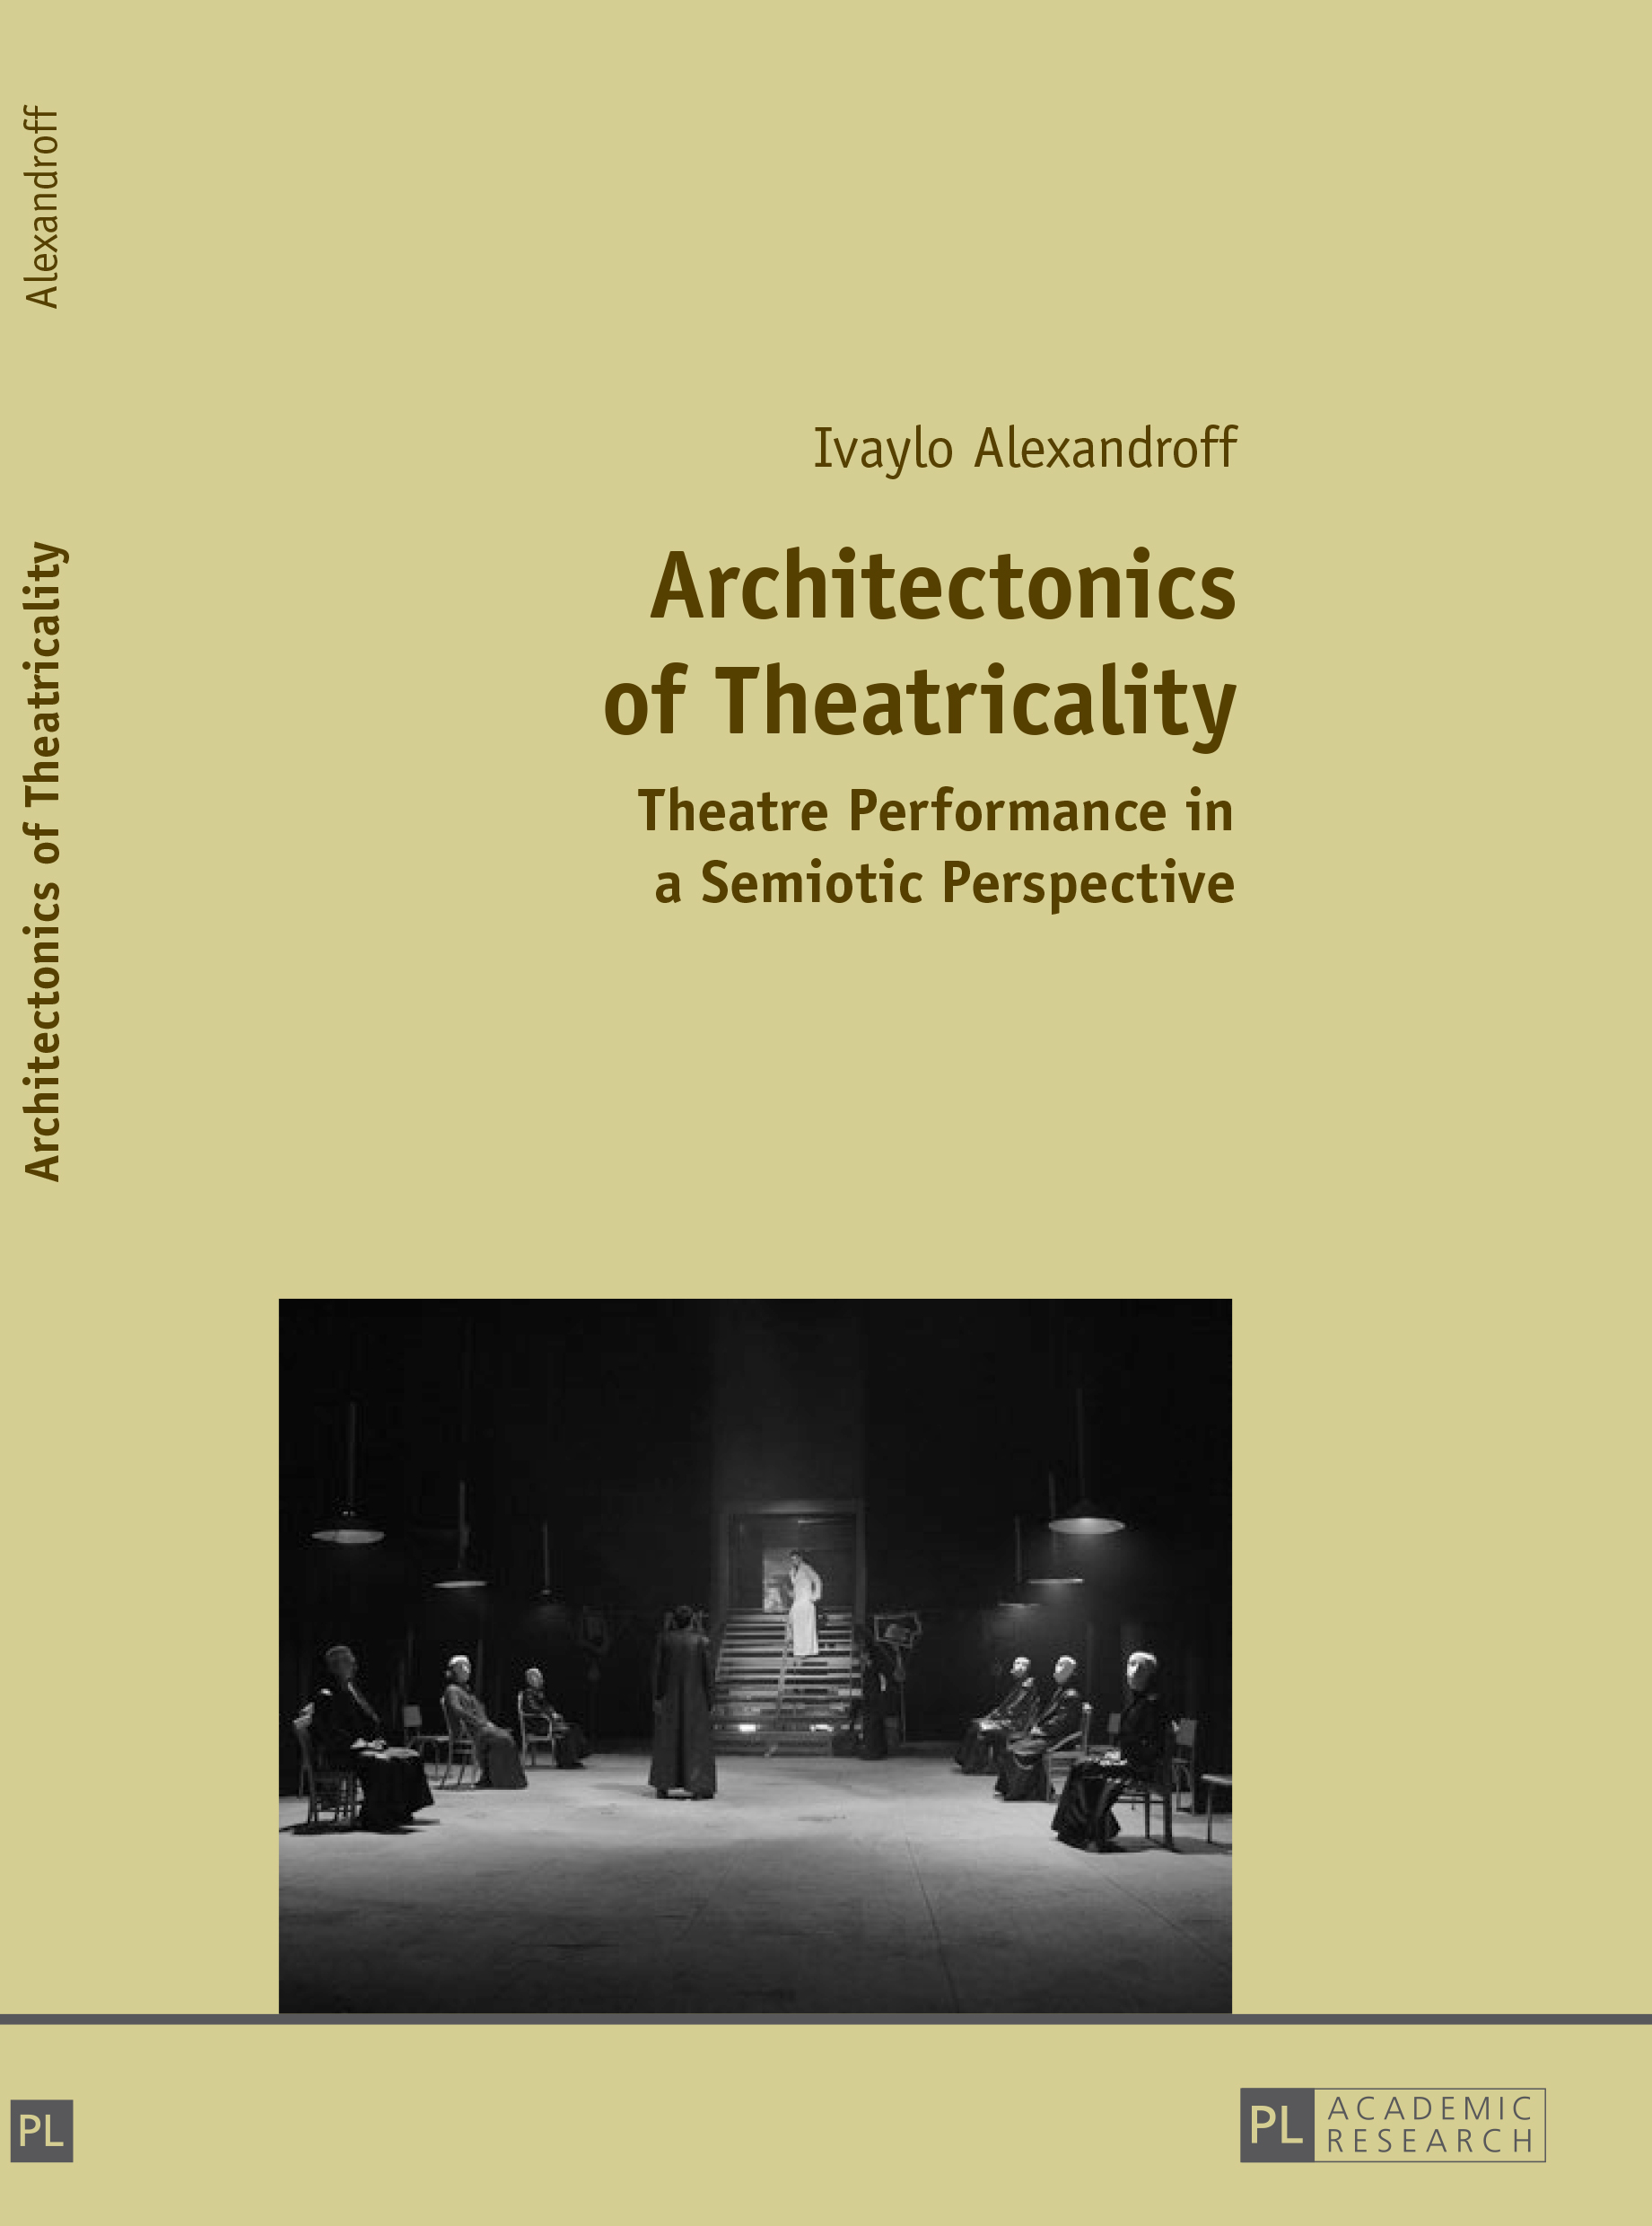 architectonics-of-theatricality-ivaylo-alexandroff-front